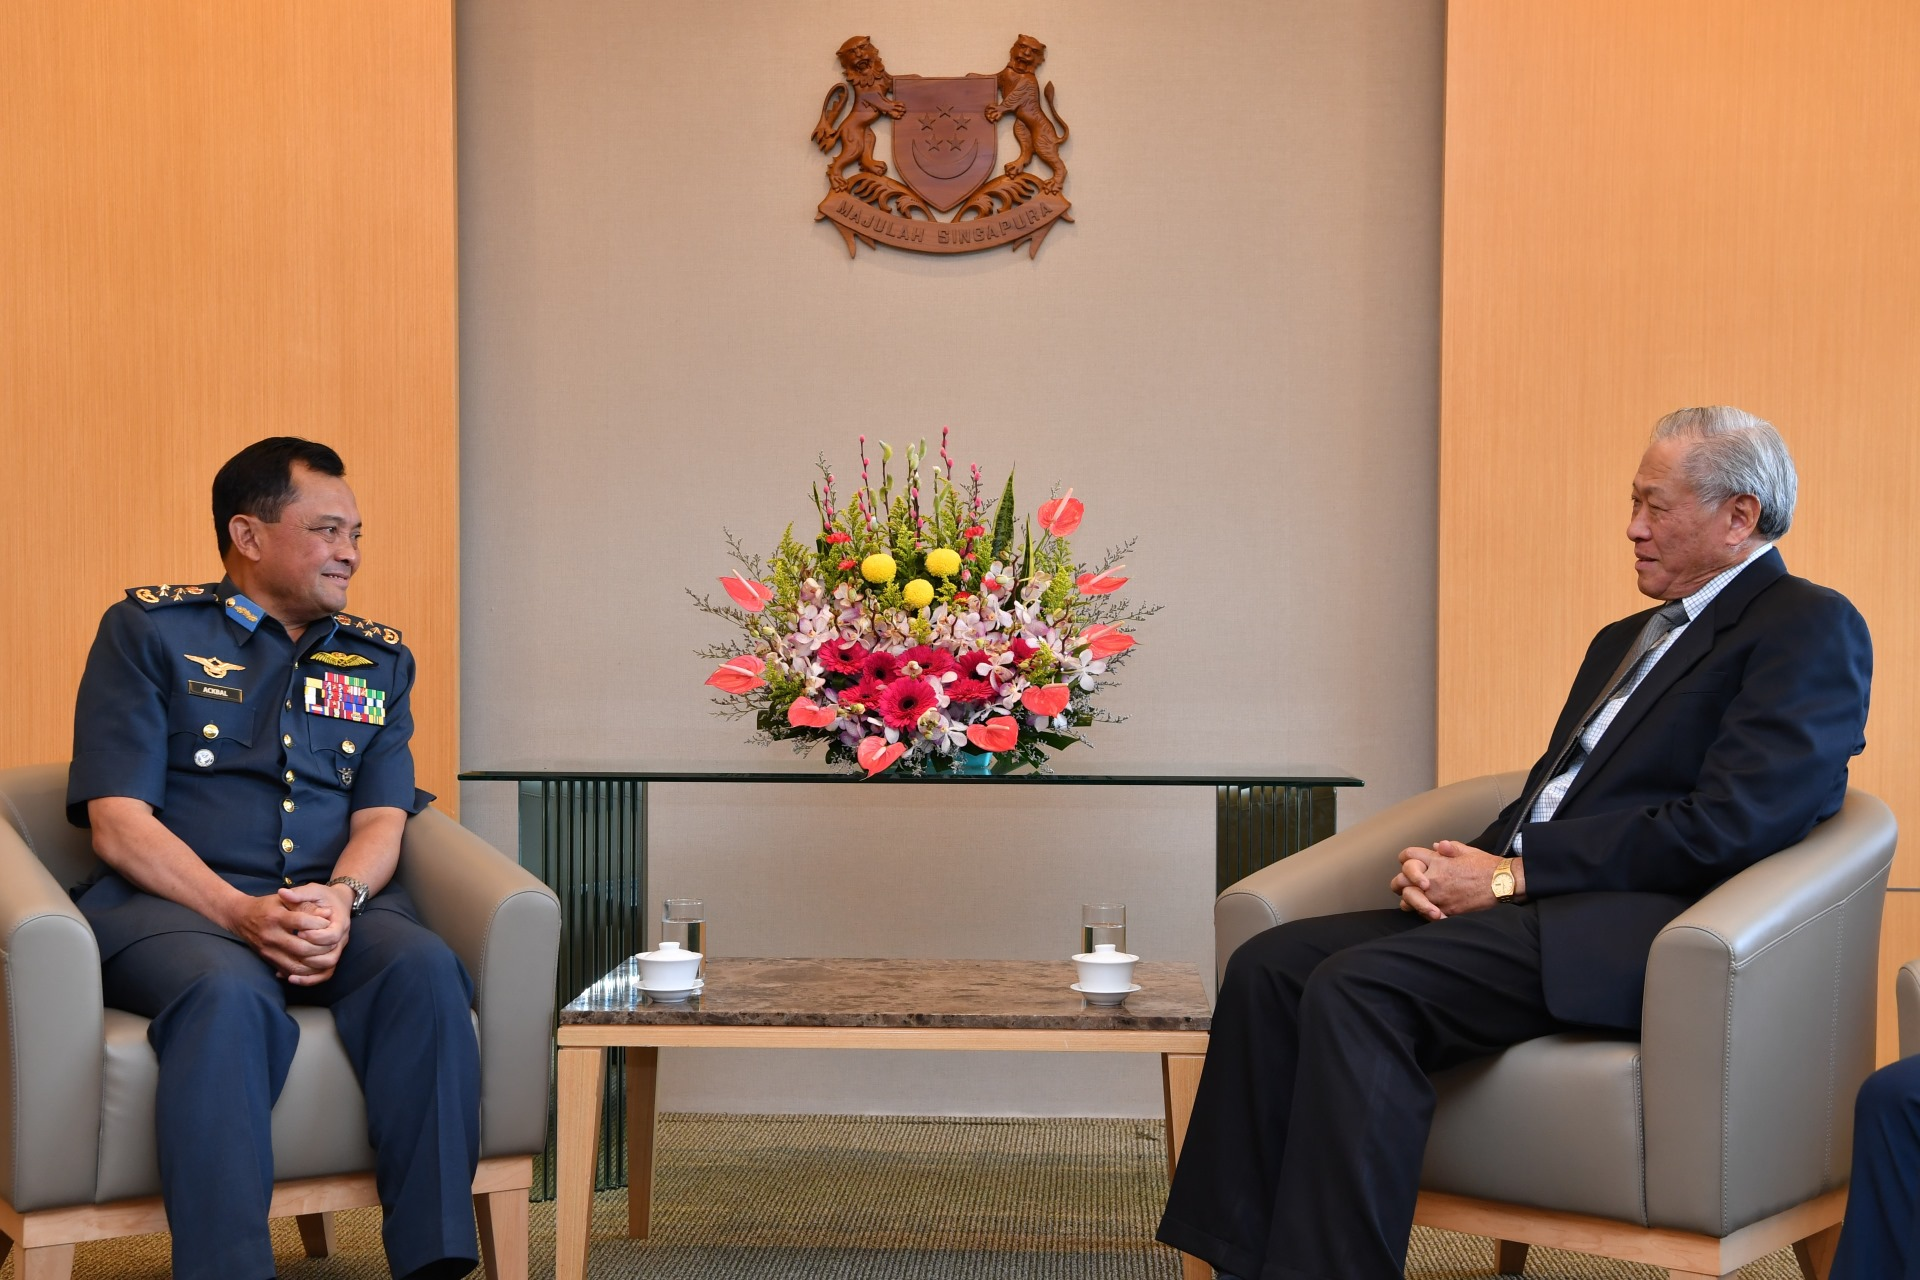 Chief of Air Force of the Royal Malaysian Air Force General (GEN) Dato' Sri Ackbal bin Haji Abdul Samad calling on Minister for Defence Dr Ng Eng Hen.